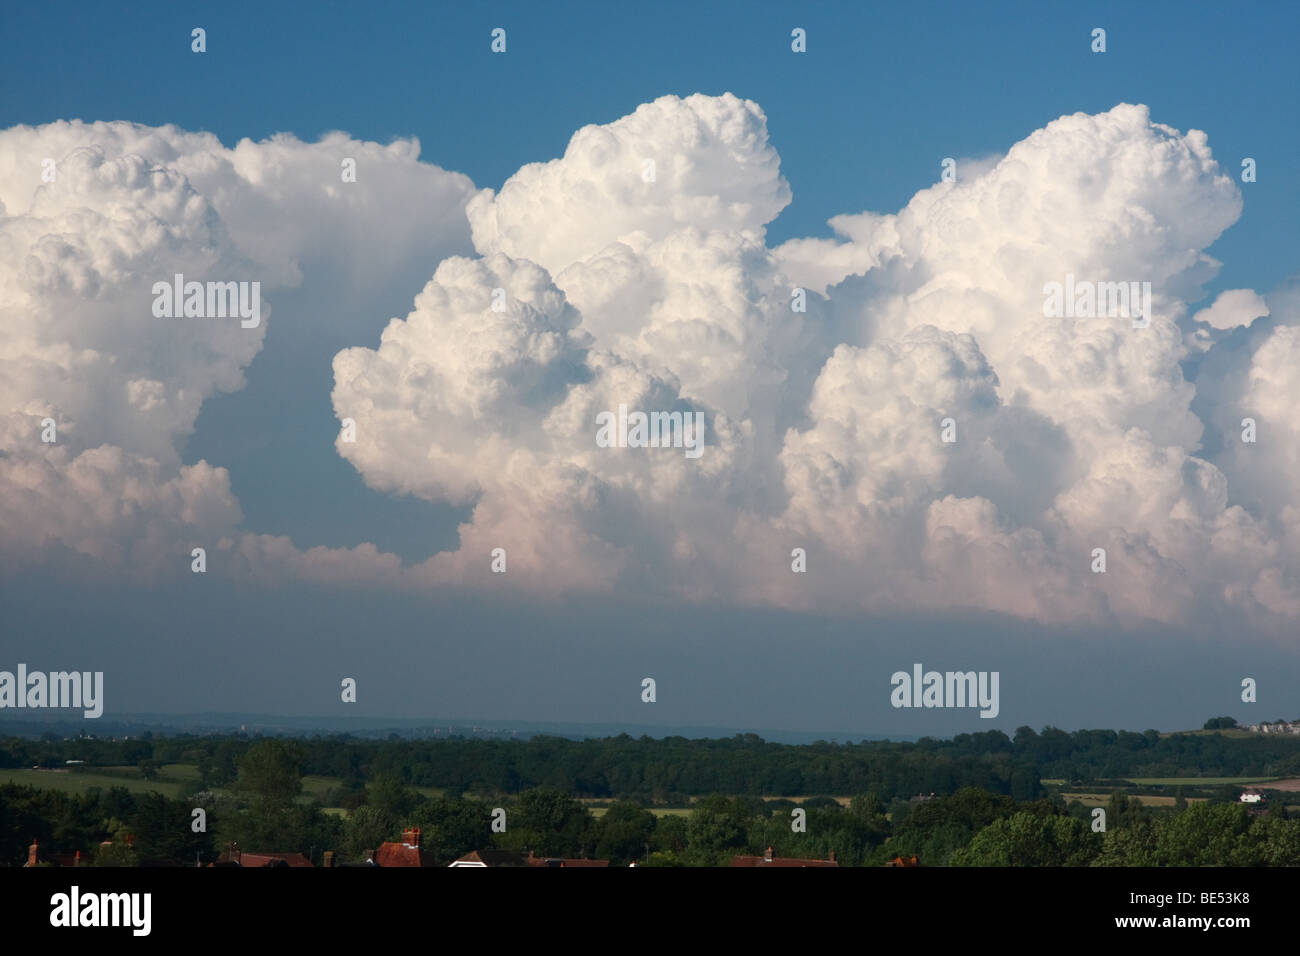 Stormclouds above Southdowns, Fulking, UK - Stock Image